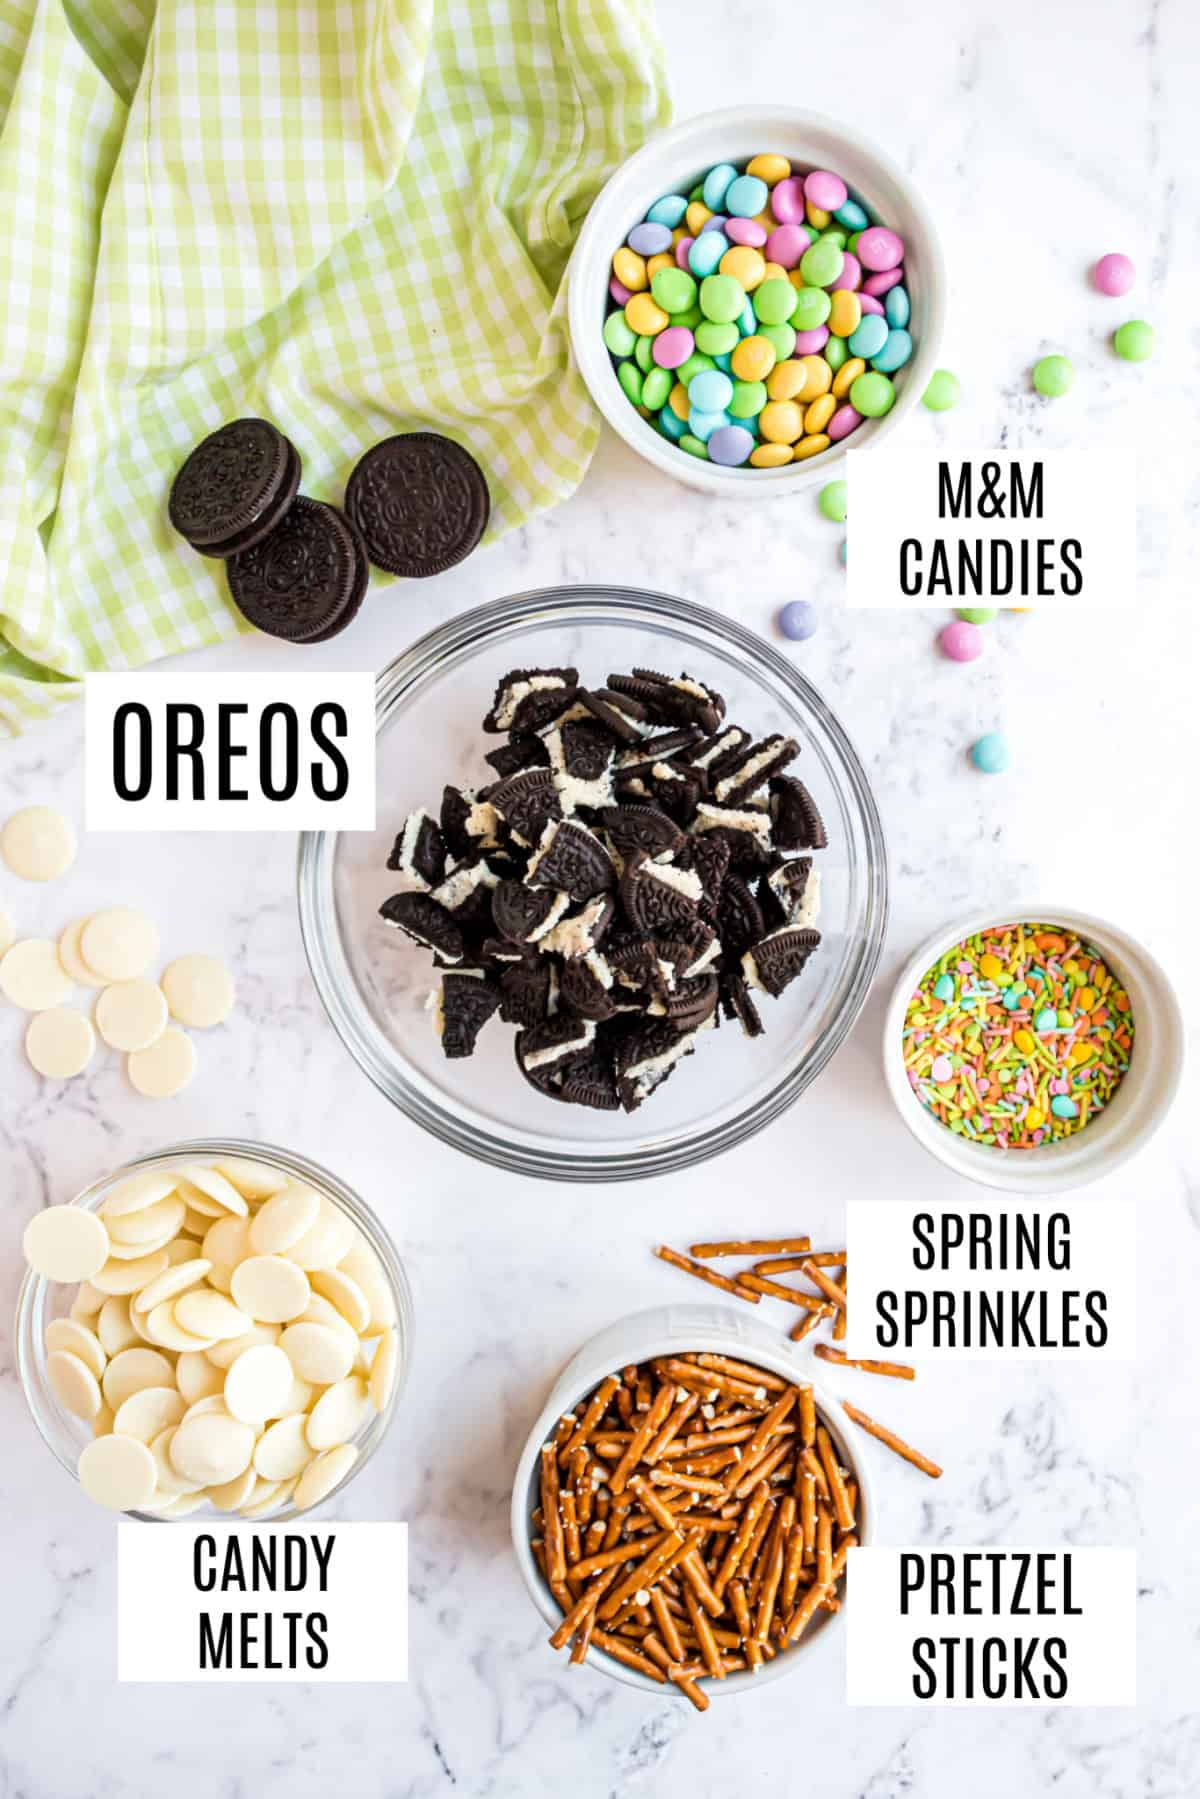 Ingredients needed for bunny chow candy, including Oreos and pretzels.